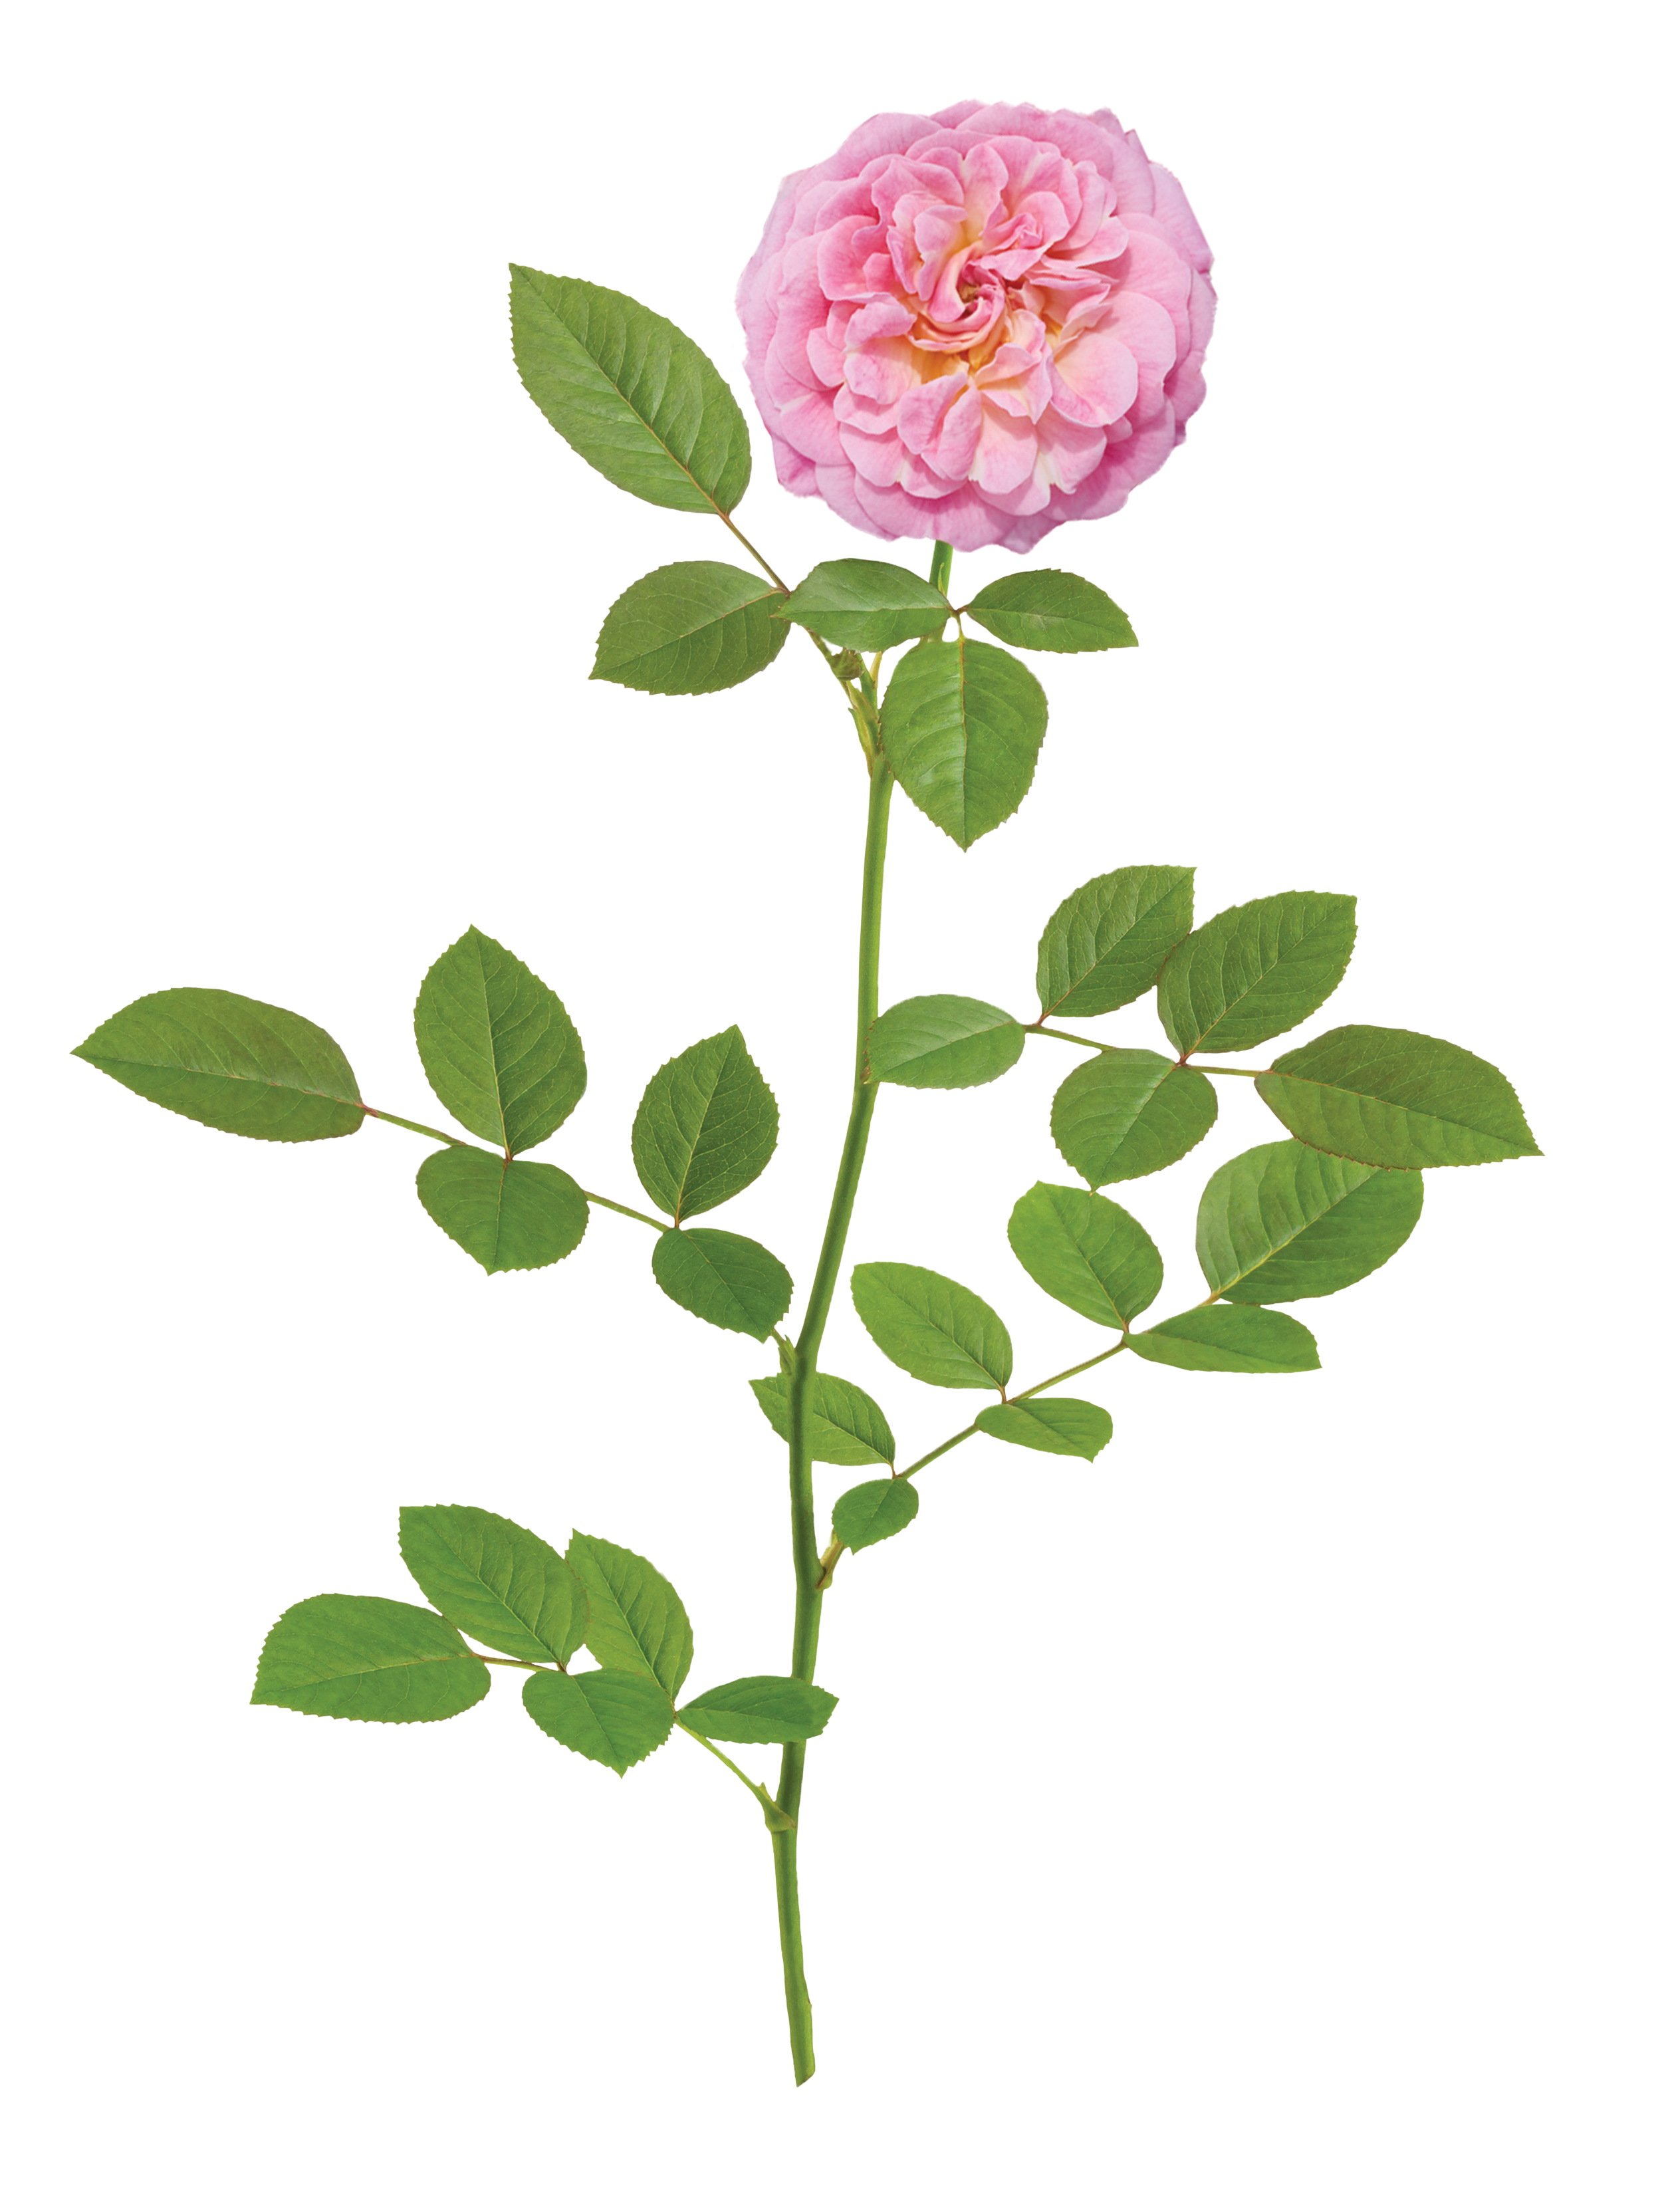 The Sweet Drift® Rose - 'Meiswetdom' PP 21,612Sweet Drift® forms full clusters of sweet pink blooms from mid-spring to the first hard freeze of late fall. No cottage garden is complete without the charming romance of Sweet Drift.®Zones: 4–11 | Exposure: Full sun | Habit: 1½' h x 2½' w